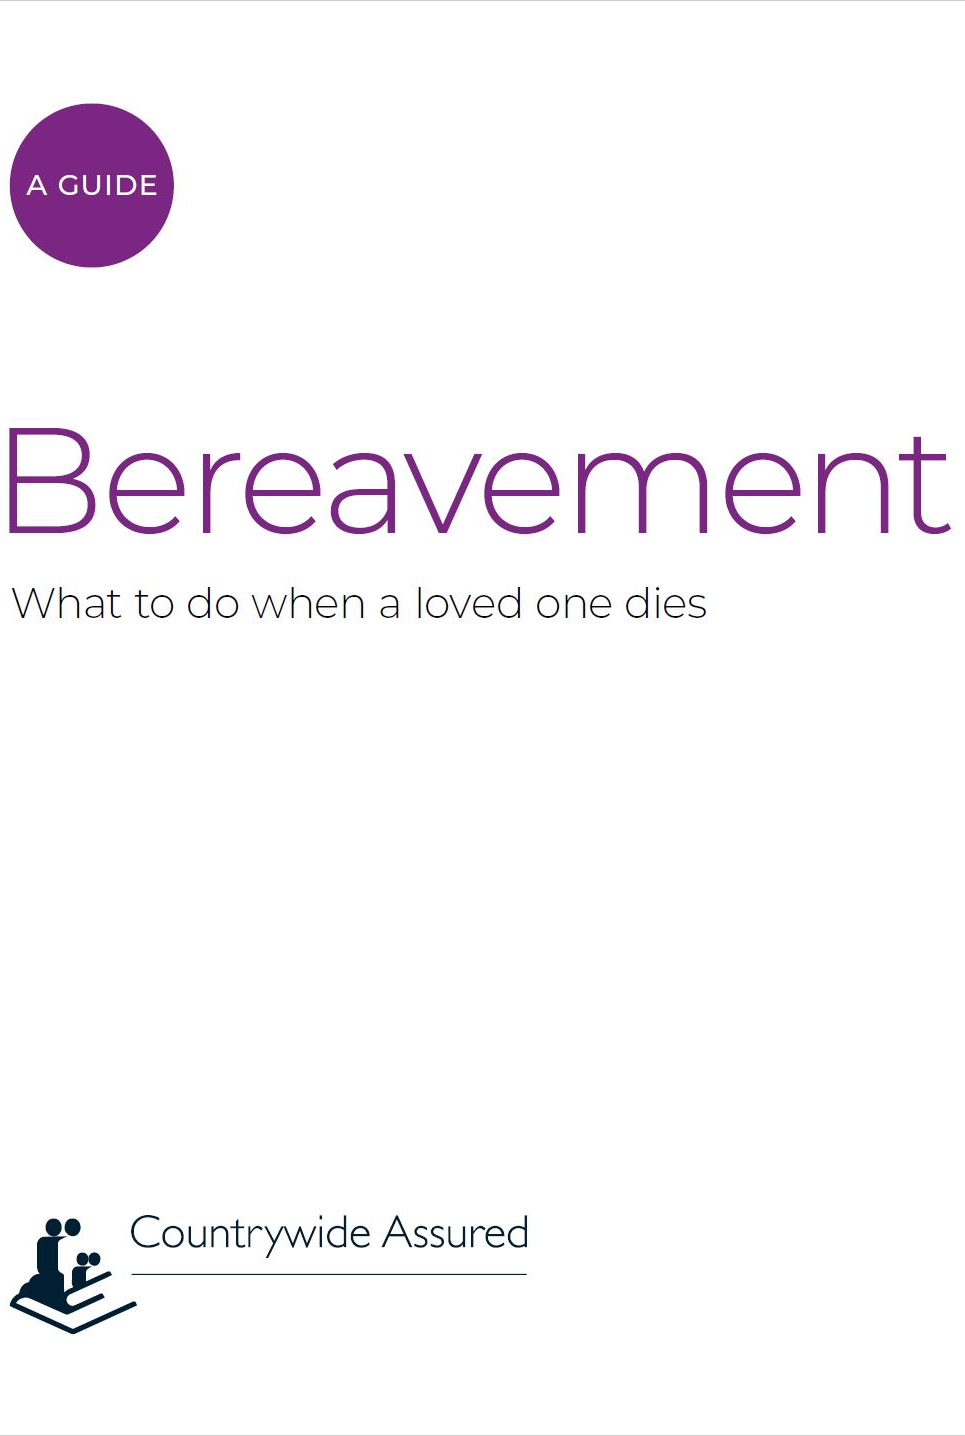 bereavement.png